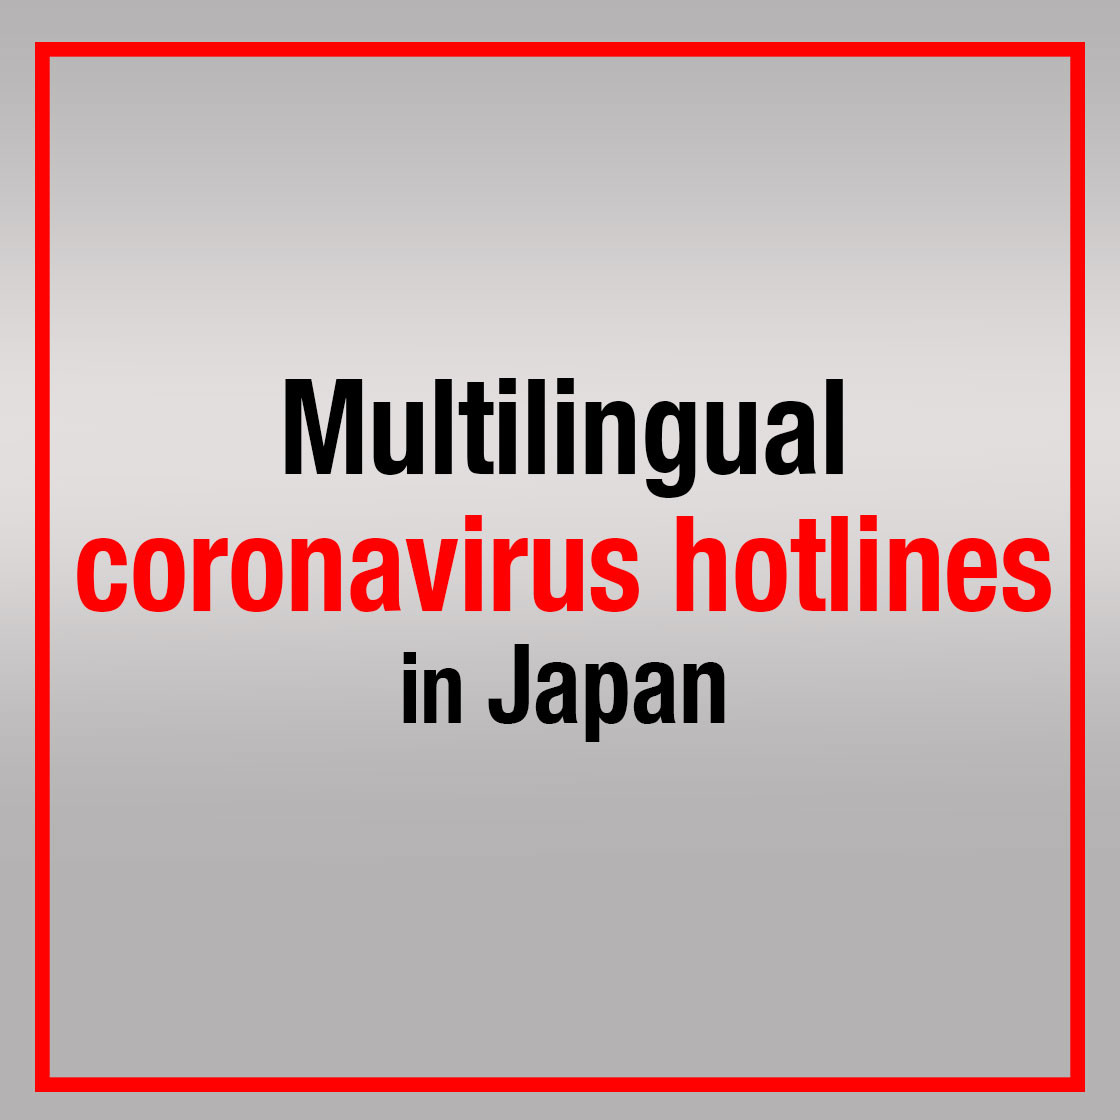 Multilingual coronavirus hotlines in Japan